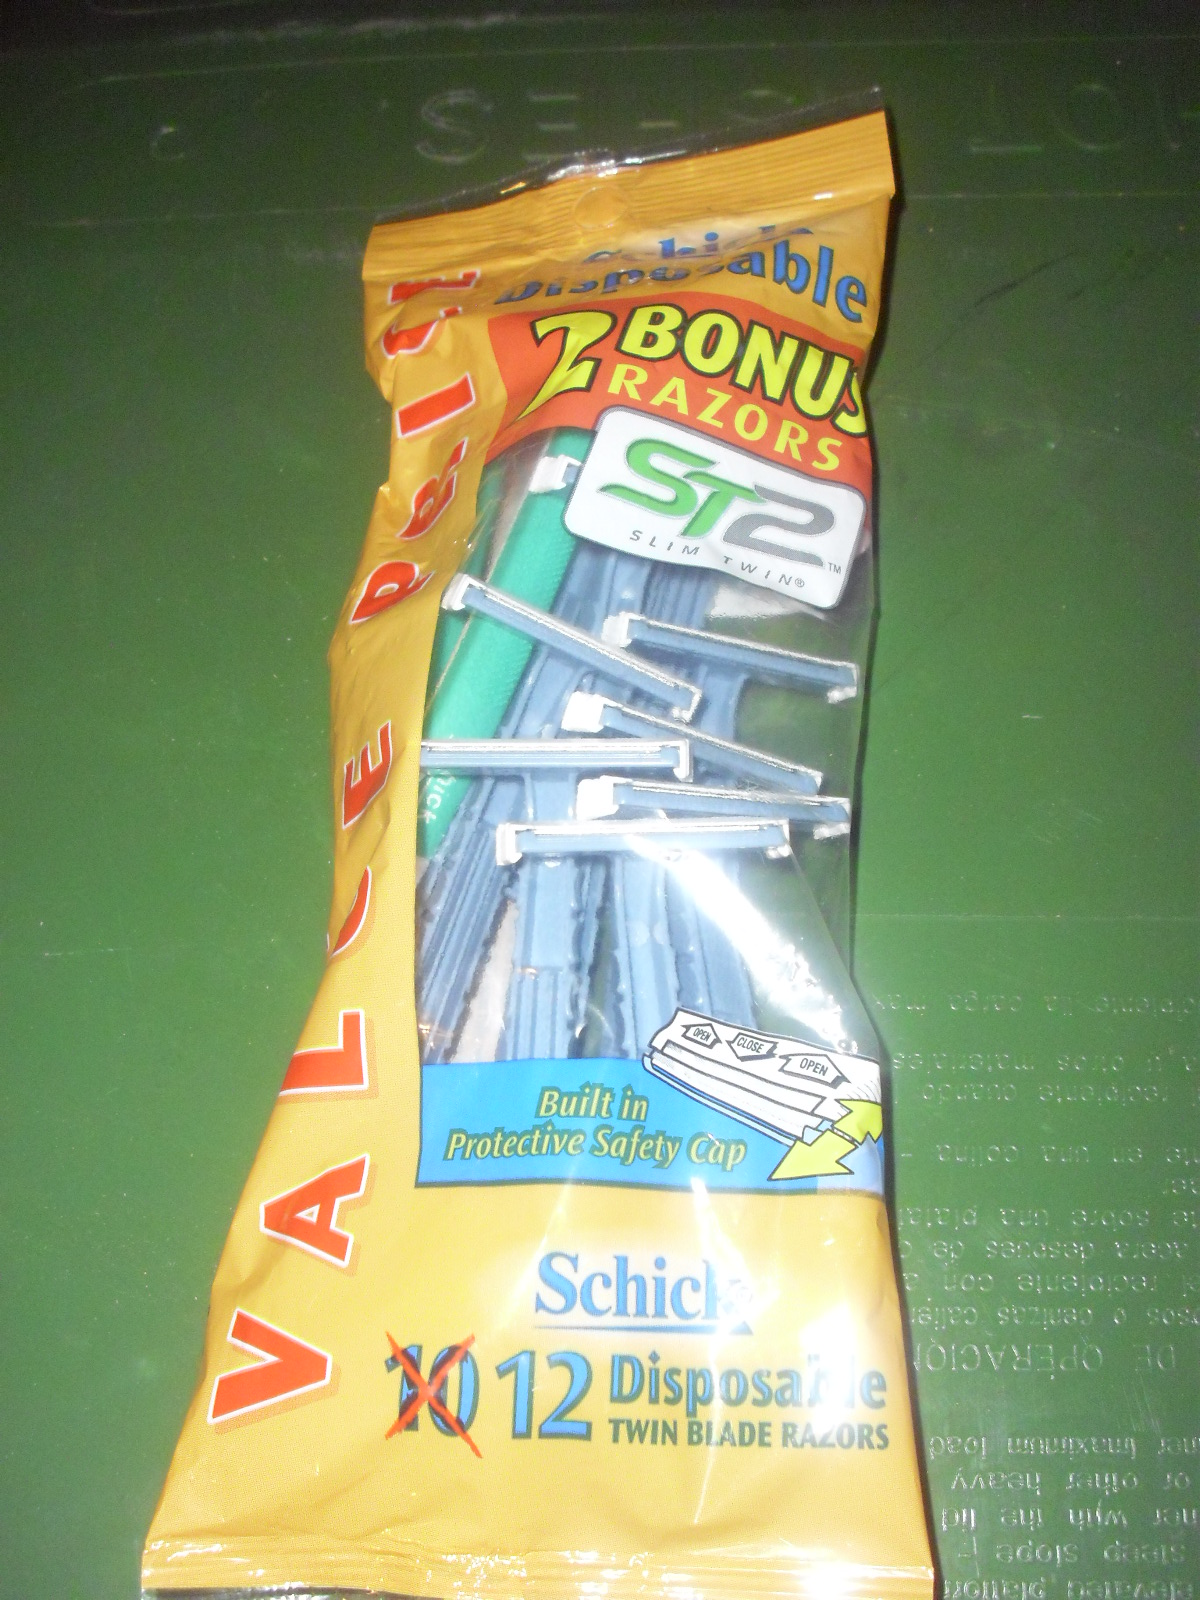 schick-disposable-razor.jpg